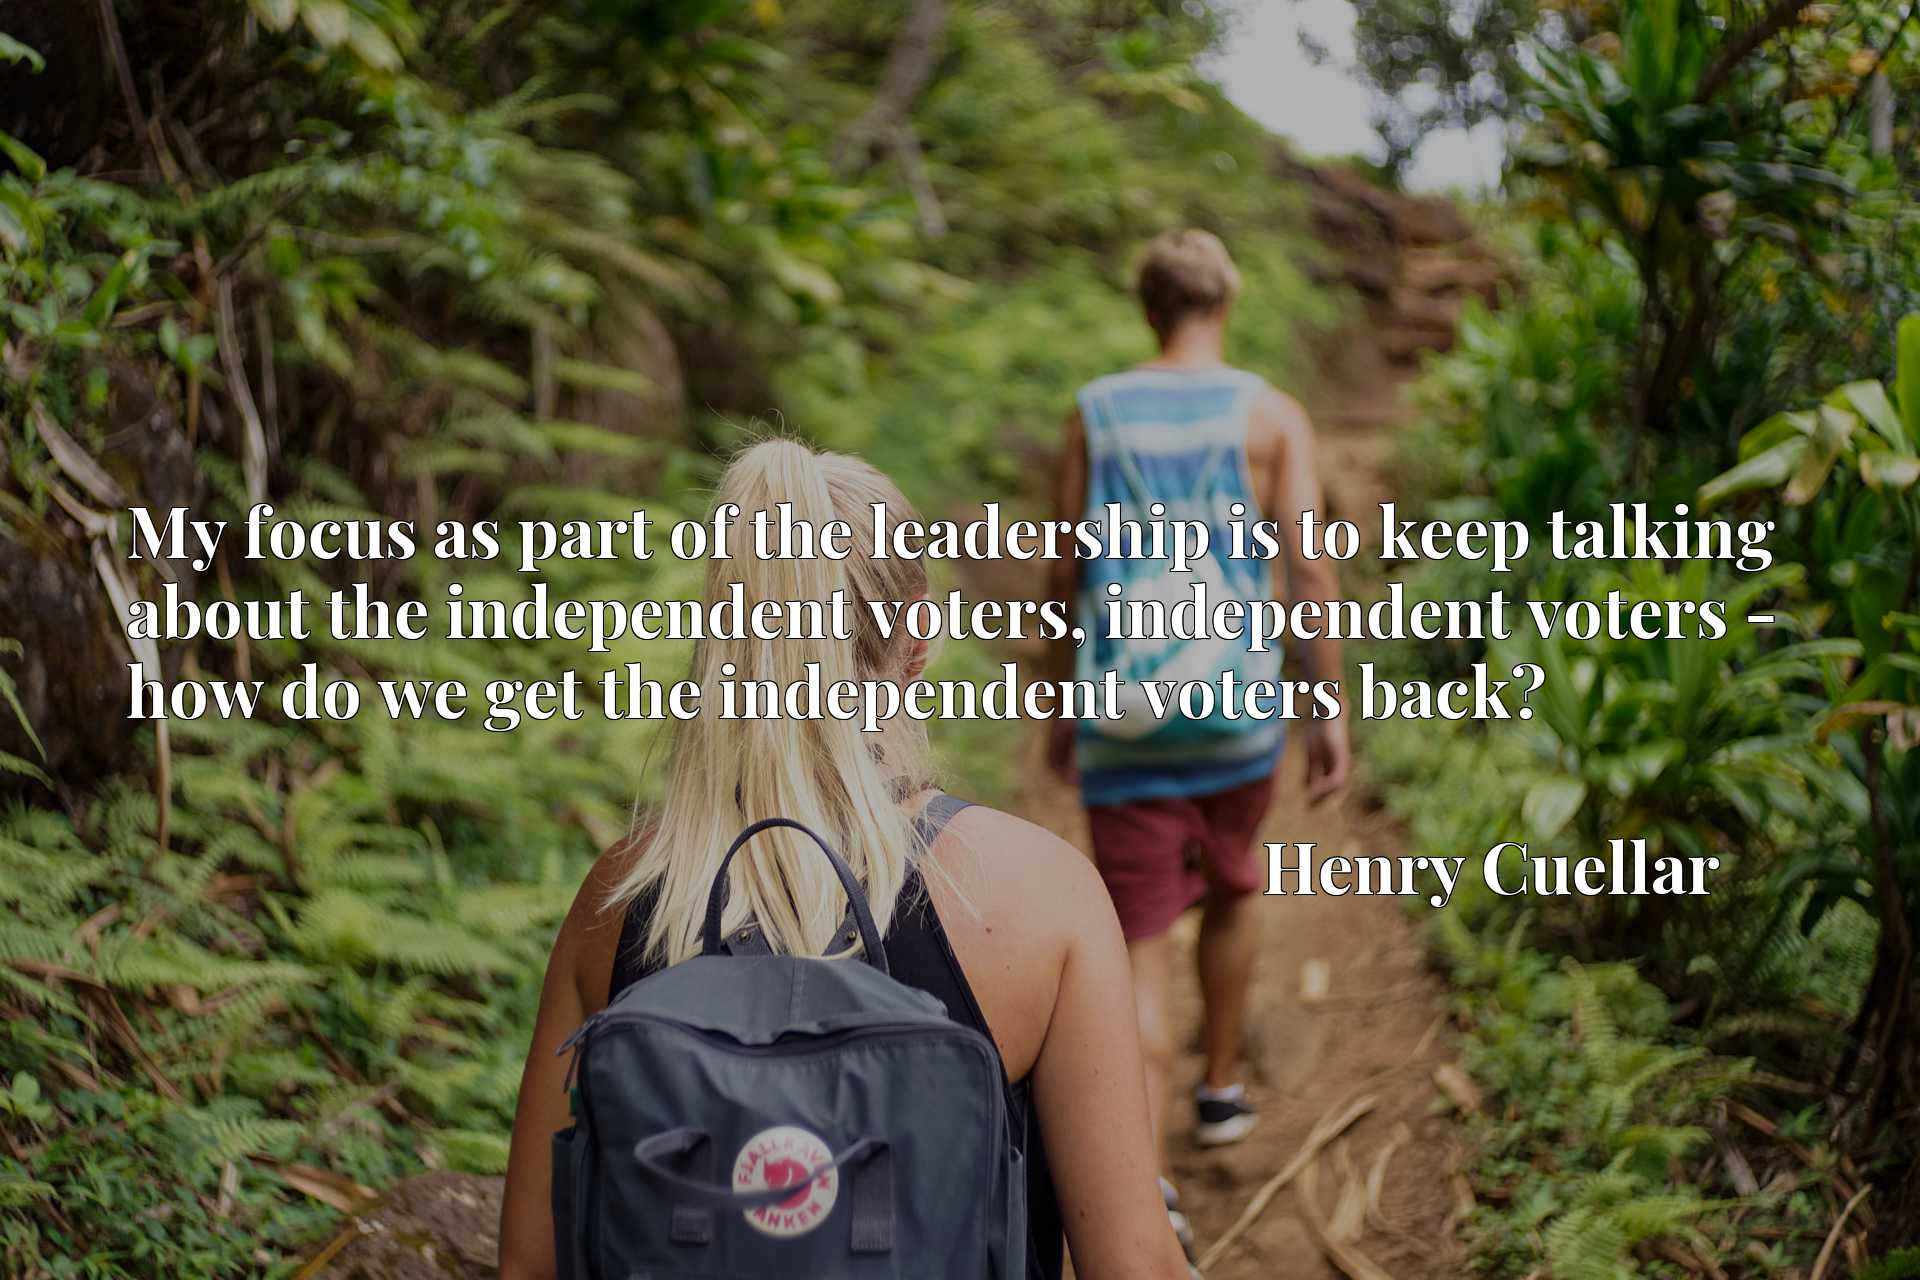 My focus as part of the leadership is to keep talking about the independent voters, independent voters - how do we get the independent voters back?